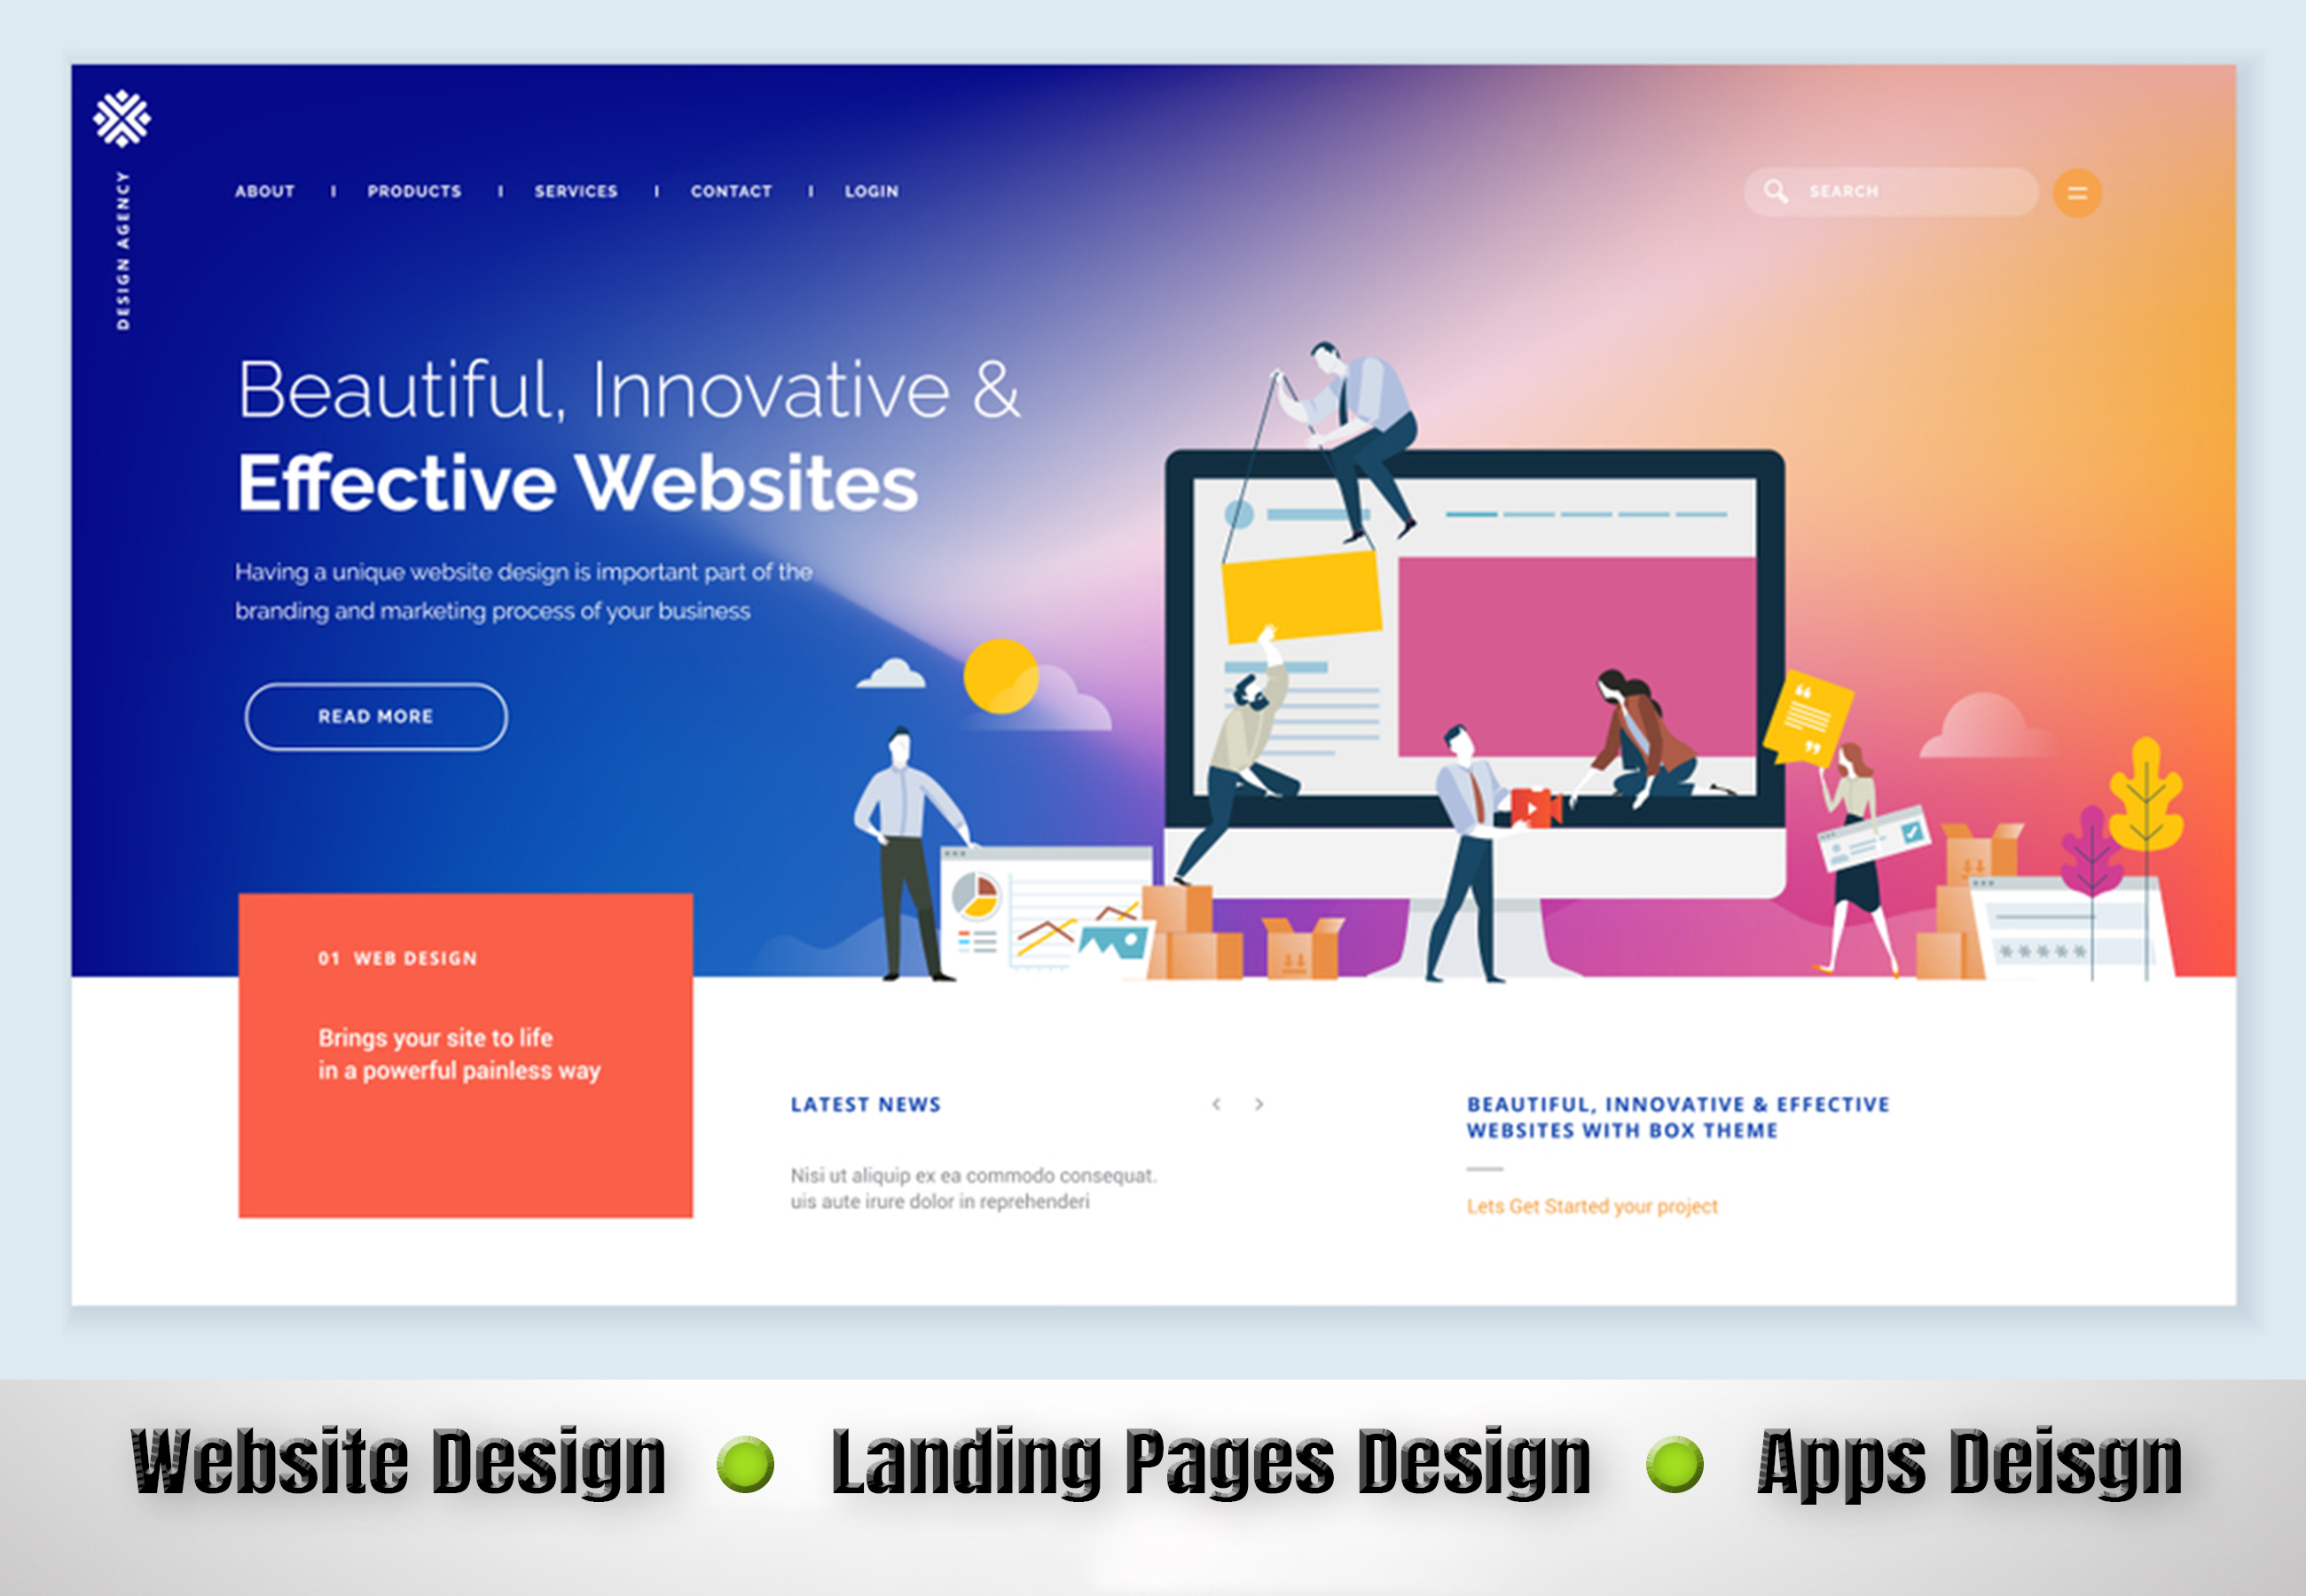 Design Awesome Ui, Ux For Web or Apps